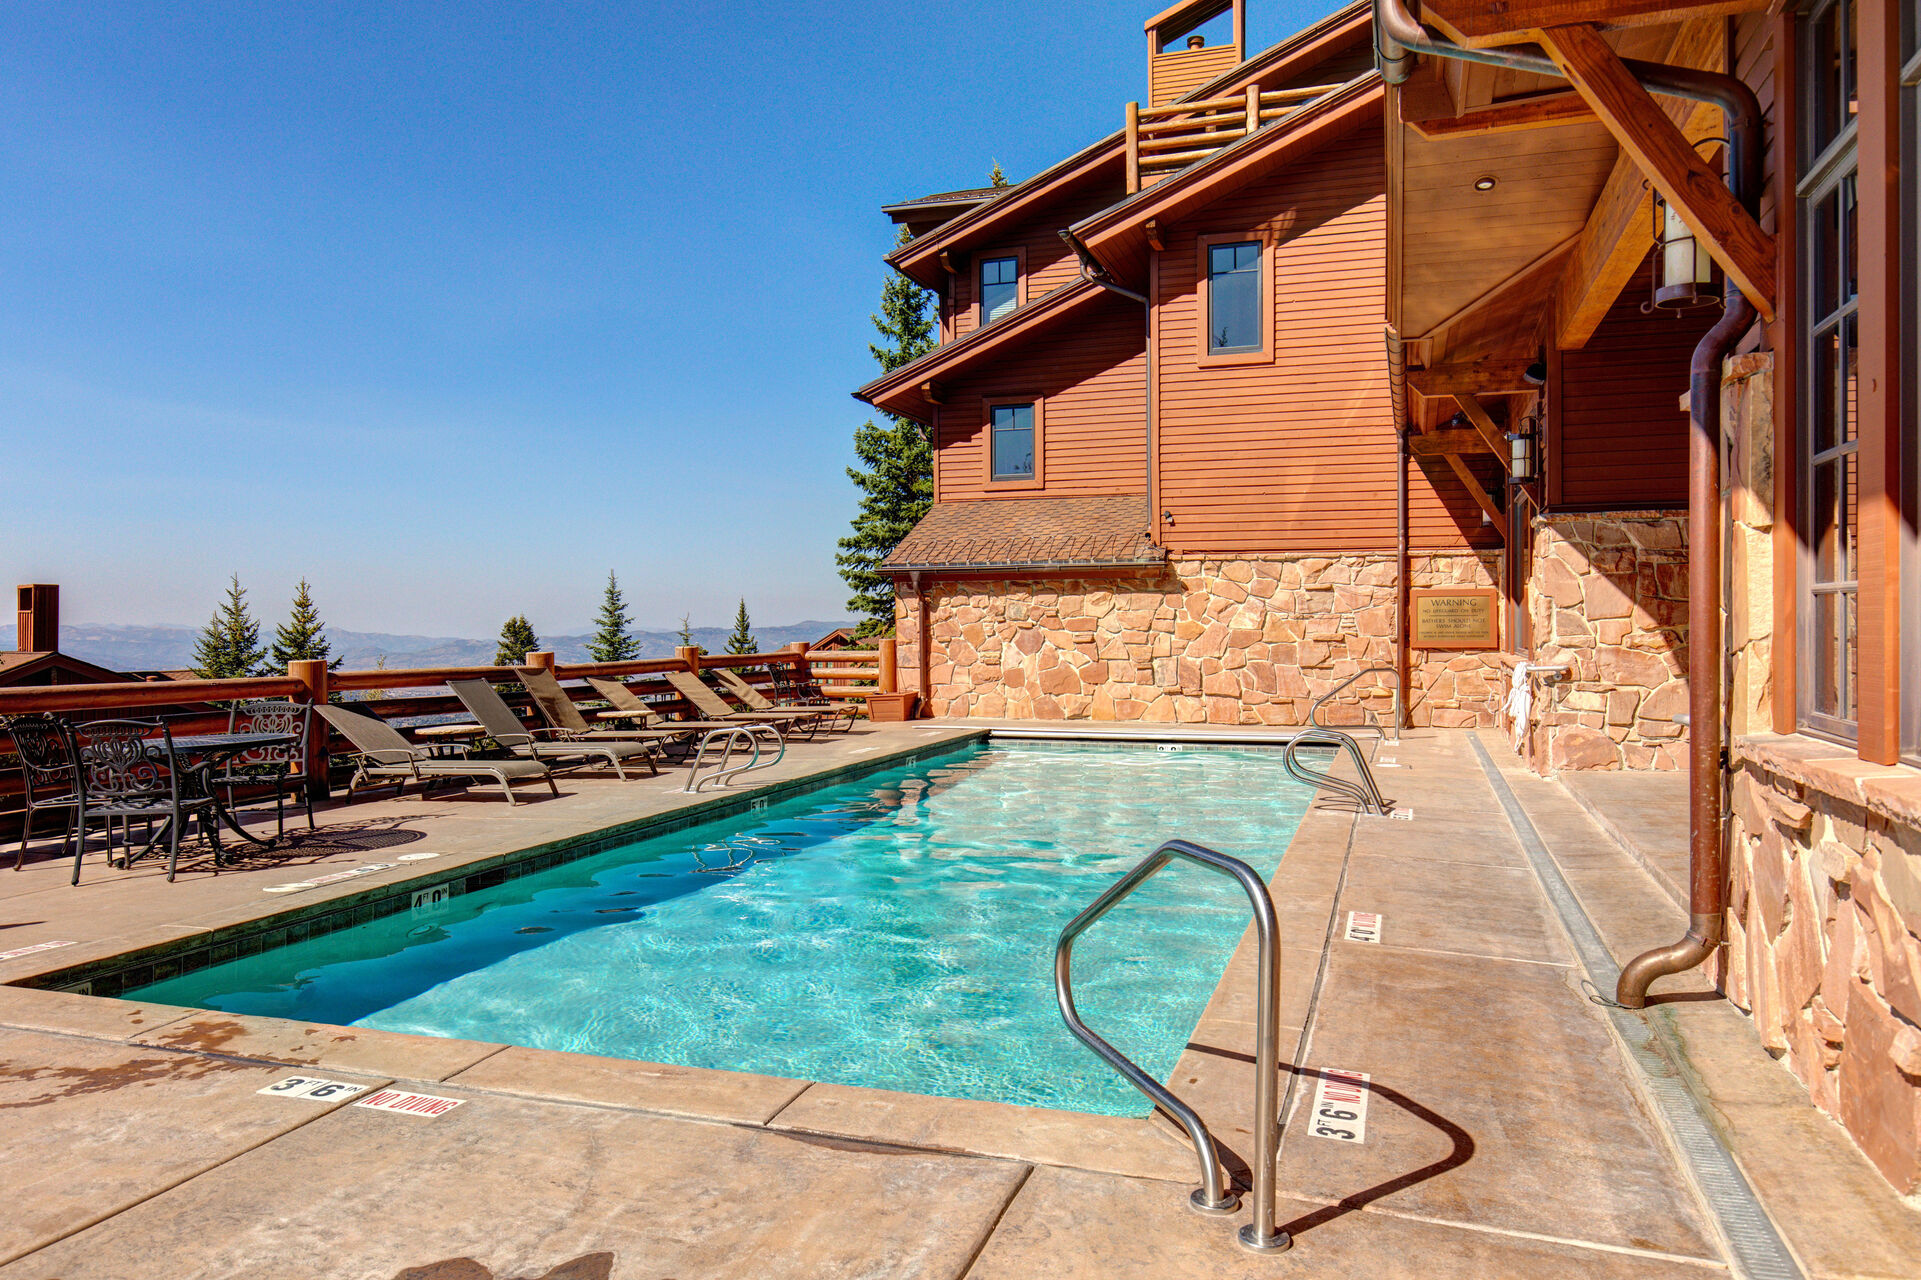 Community Heat Pool and Hot Tub Open Year Rounc